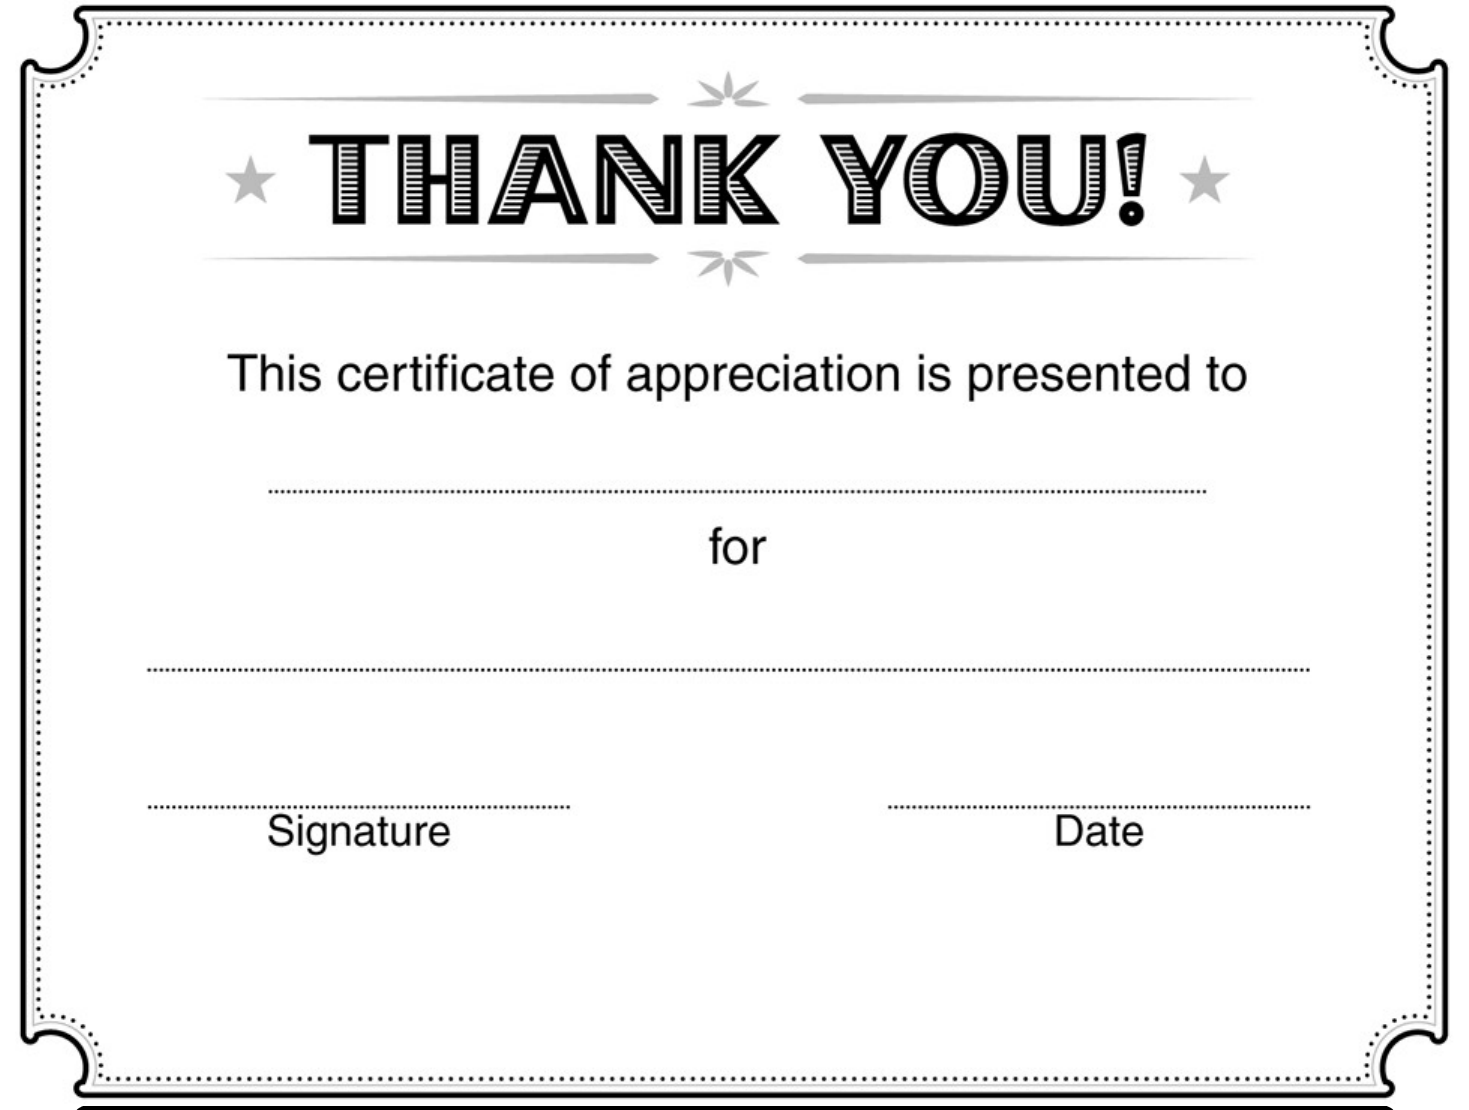 Thank you certificates templates dawaydabrowa thank you certificates templates yadclub Image collections